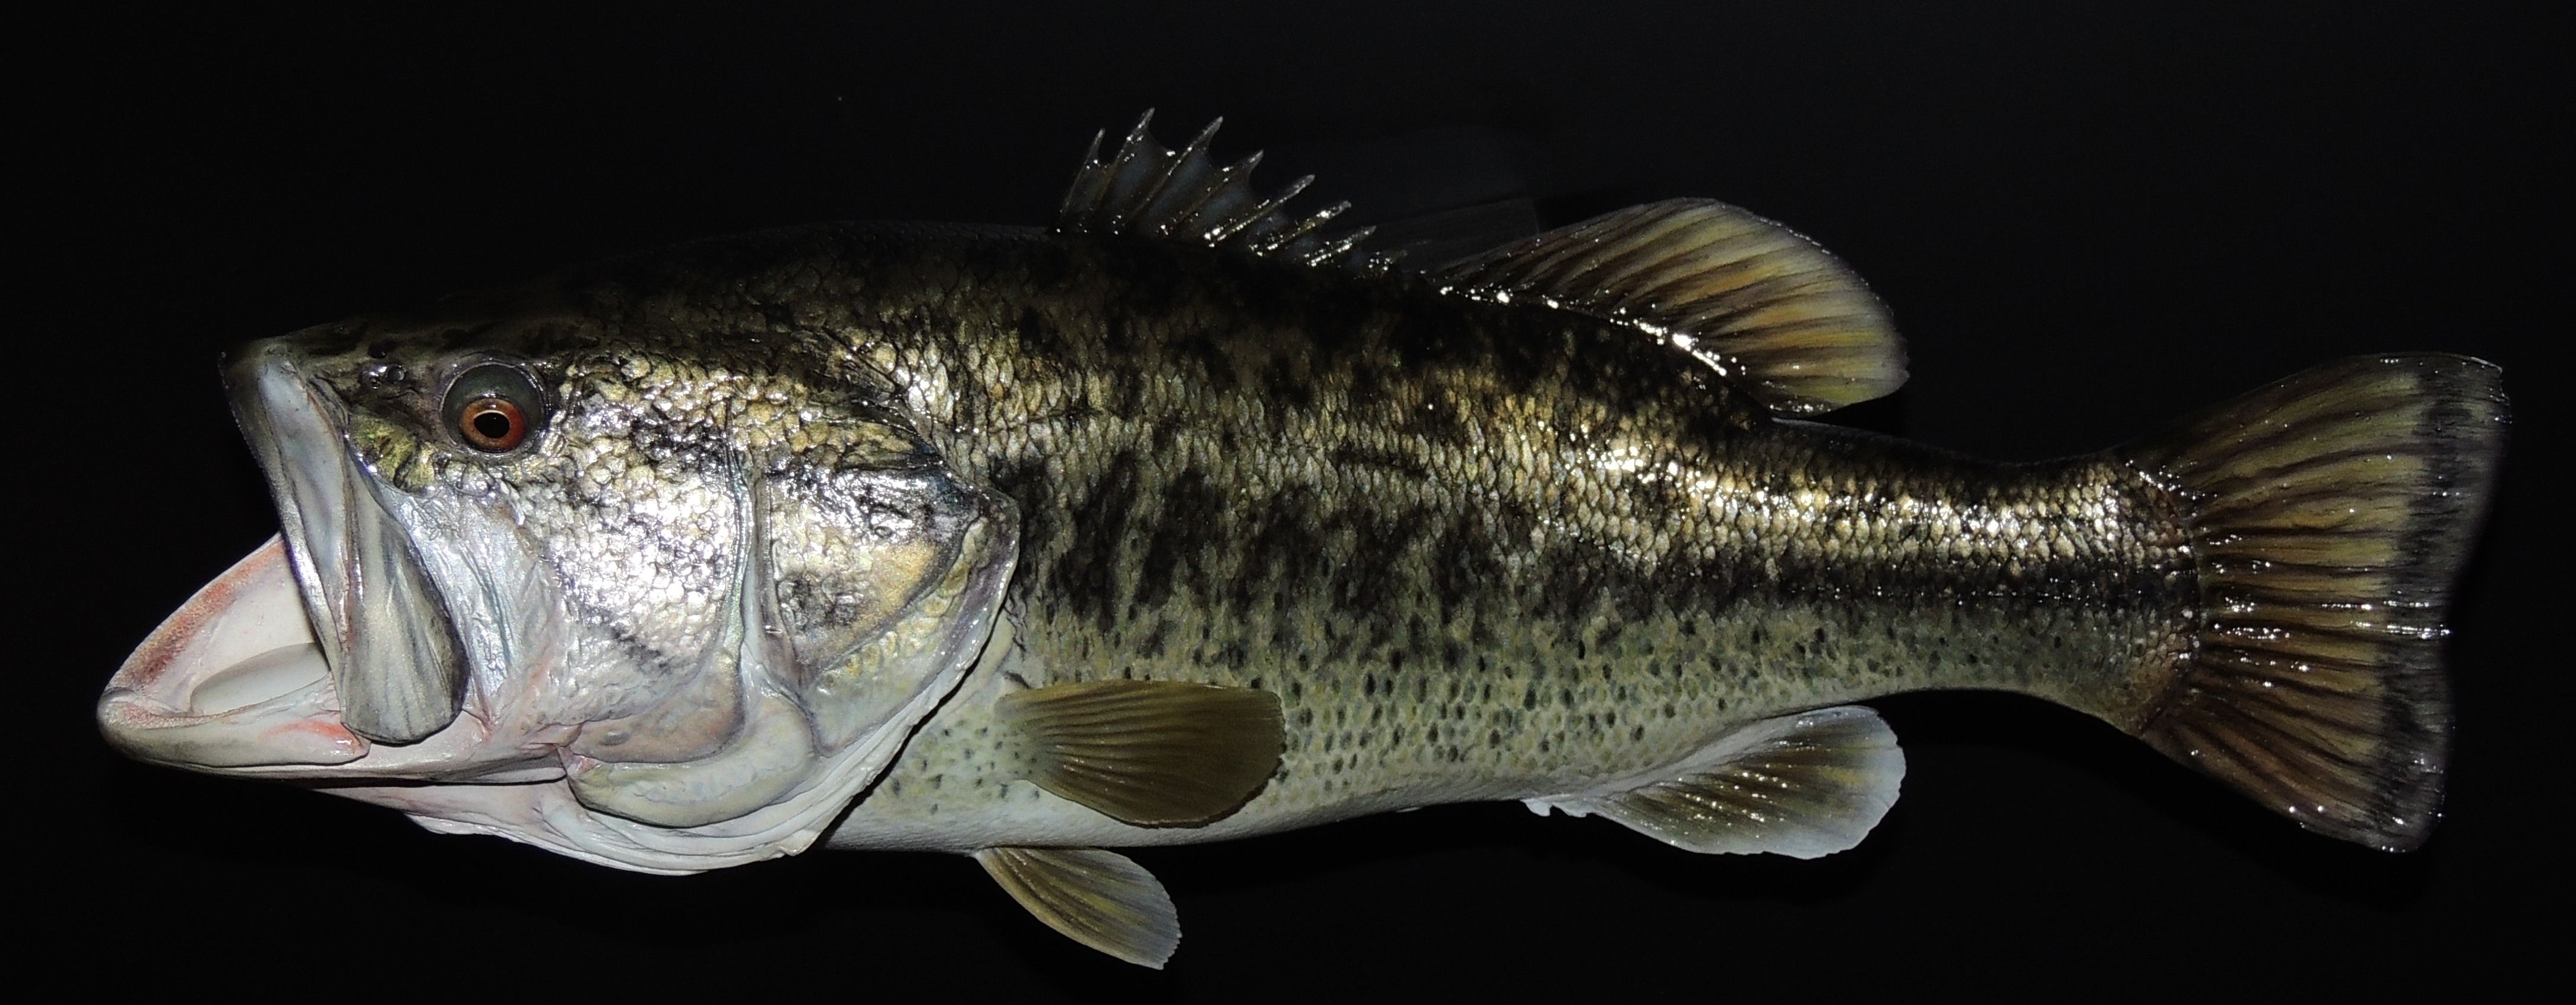 fish mounts, fish replicas, taxidermy, home décor, largemouth bass